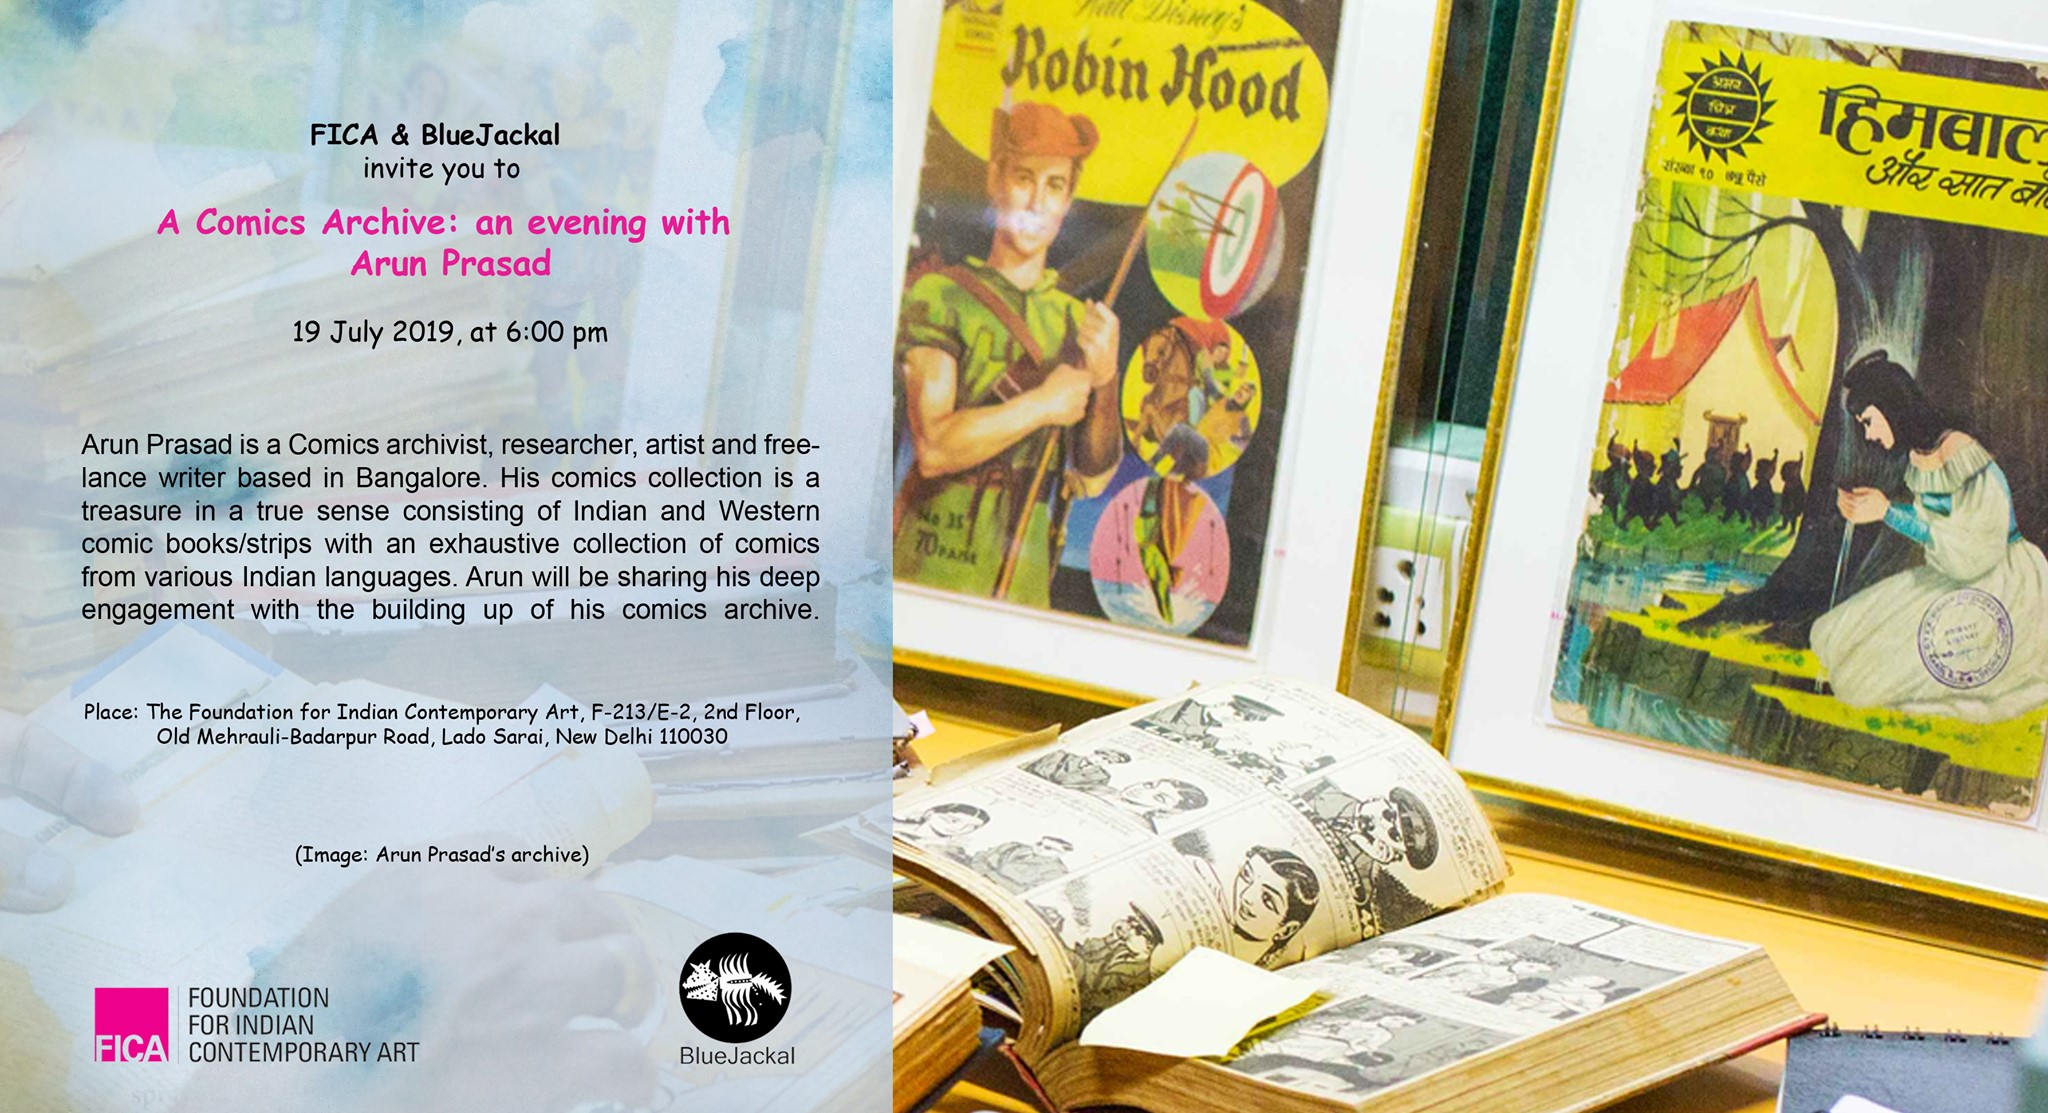 a comics archive | an evening with arun prasad 19 july 2019